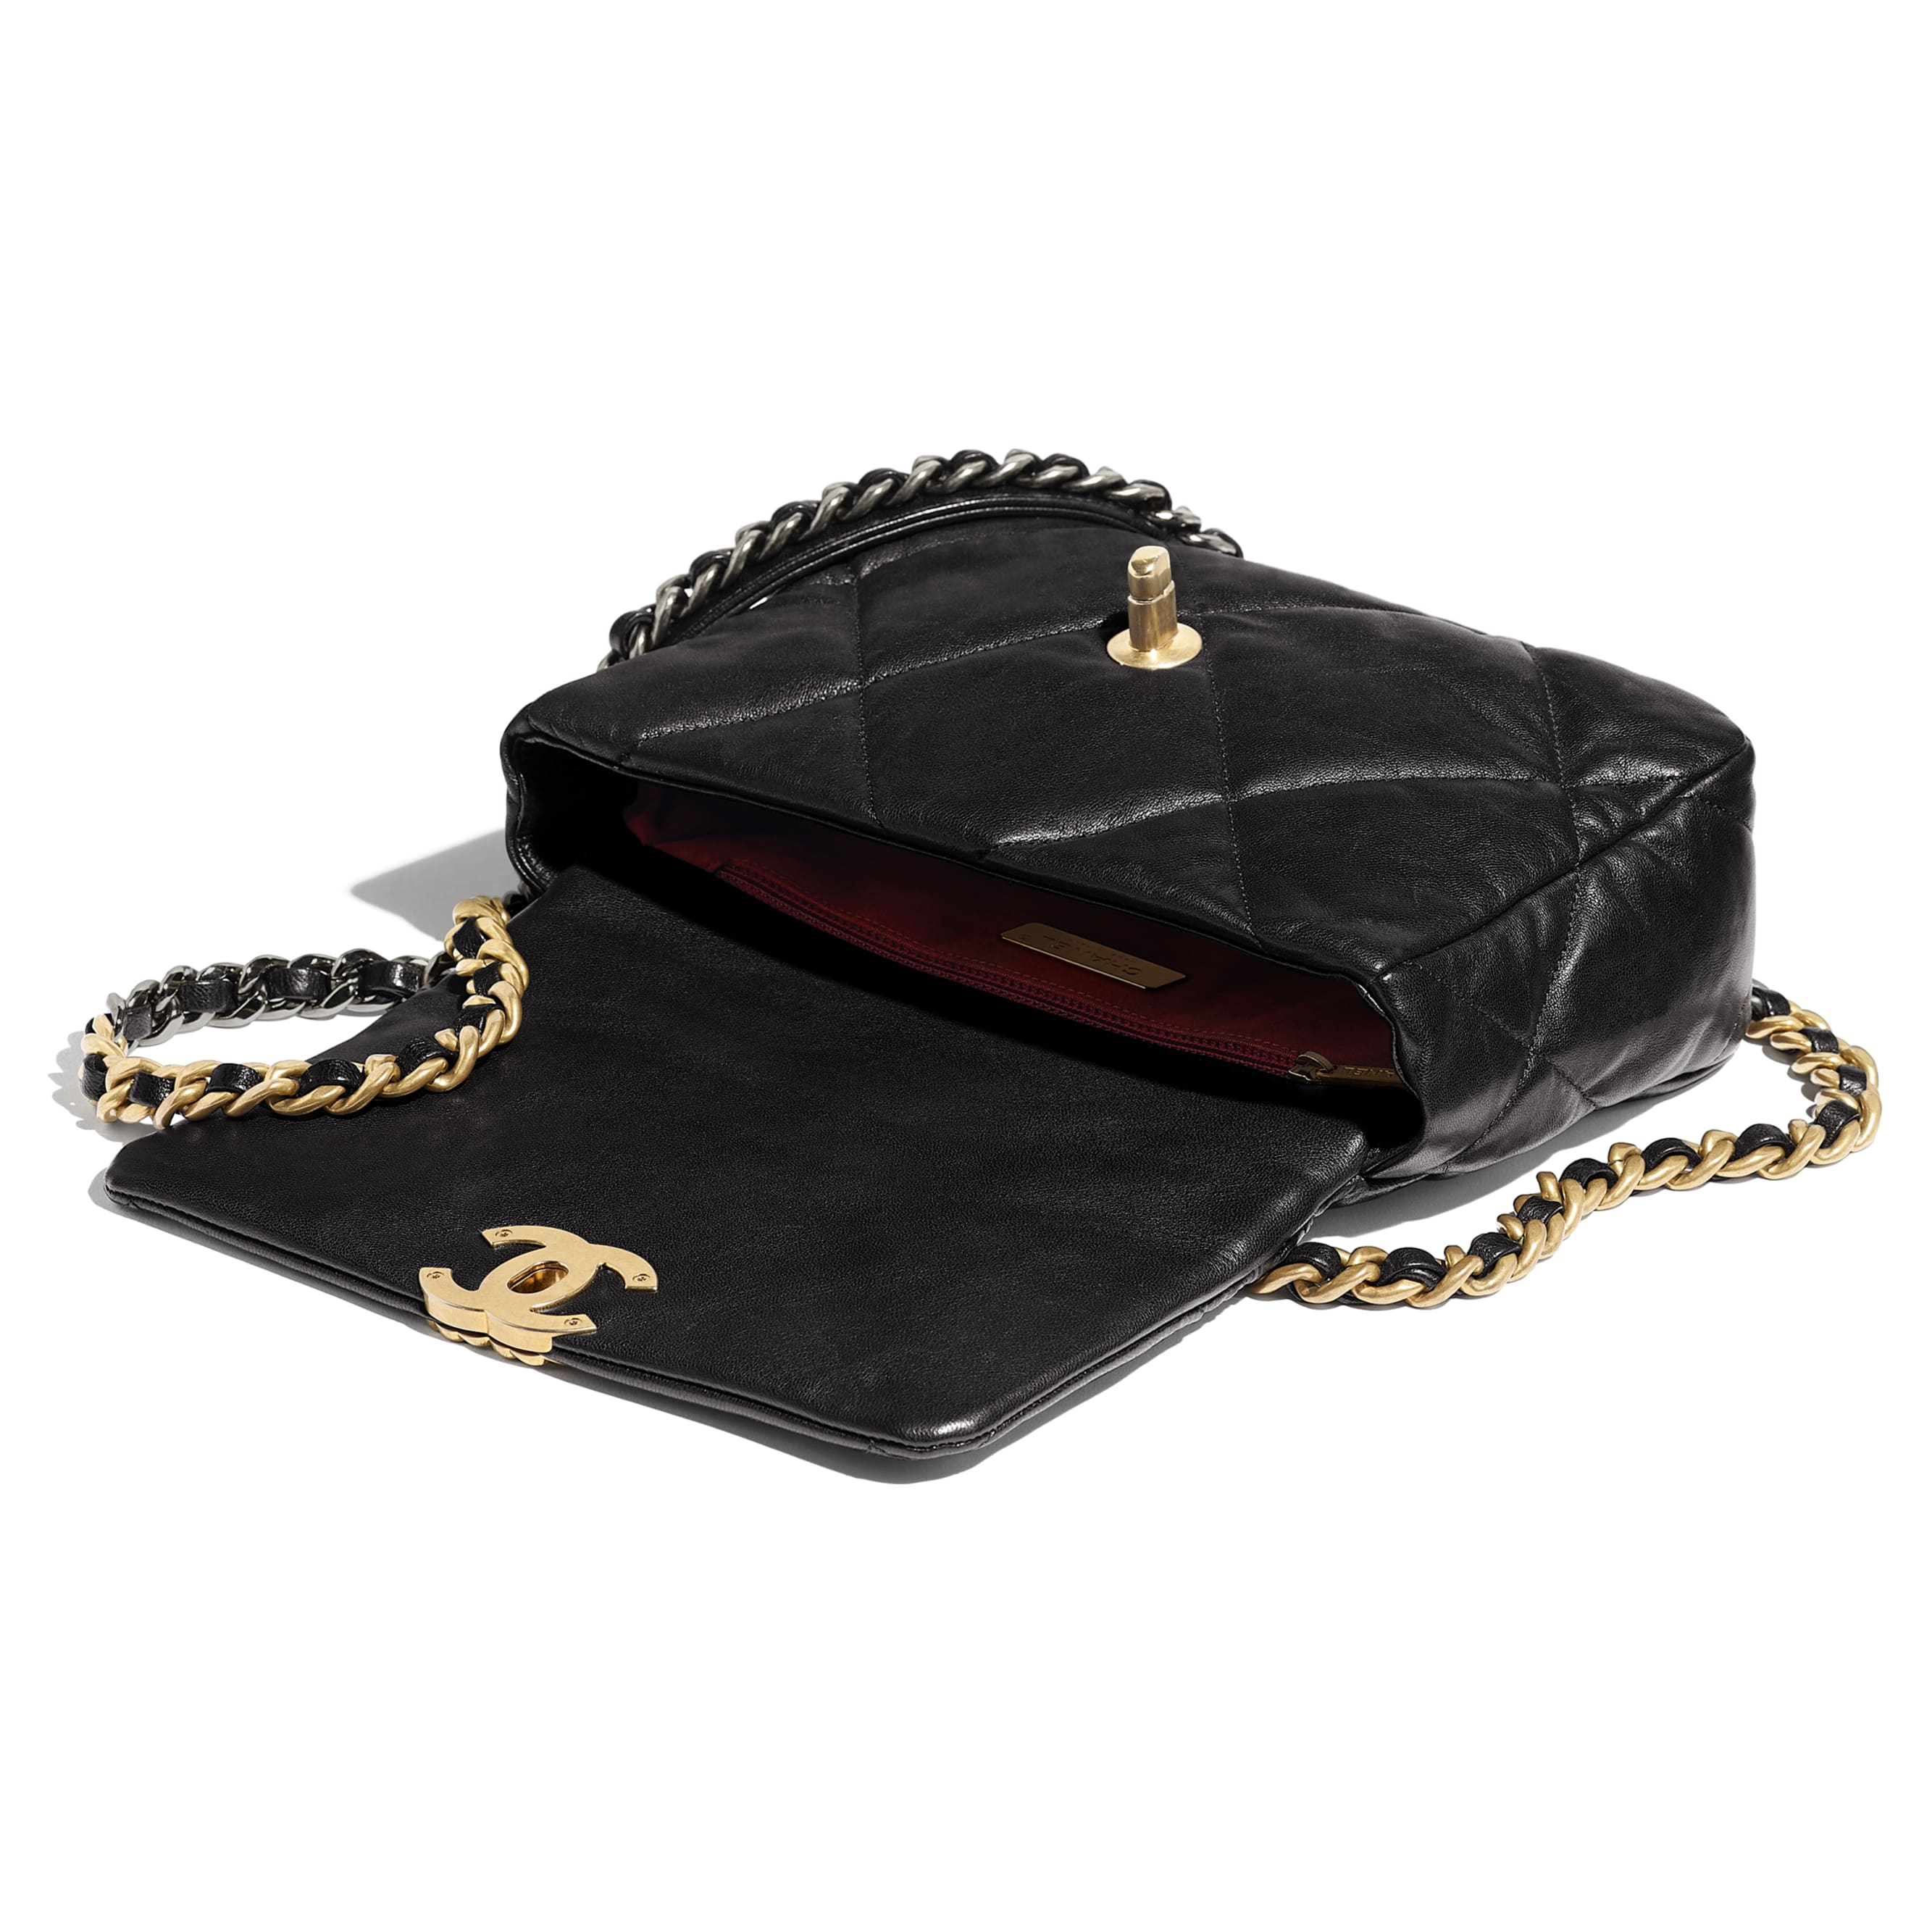 CHANEL 19 Flap Bag - Black - Lambskin, Gold-Tone, Silver-Tone & Ruthenium-Finish Metal - Other view - see standard sized version